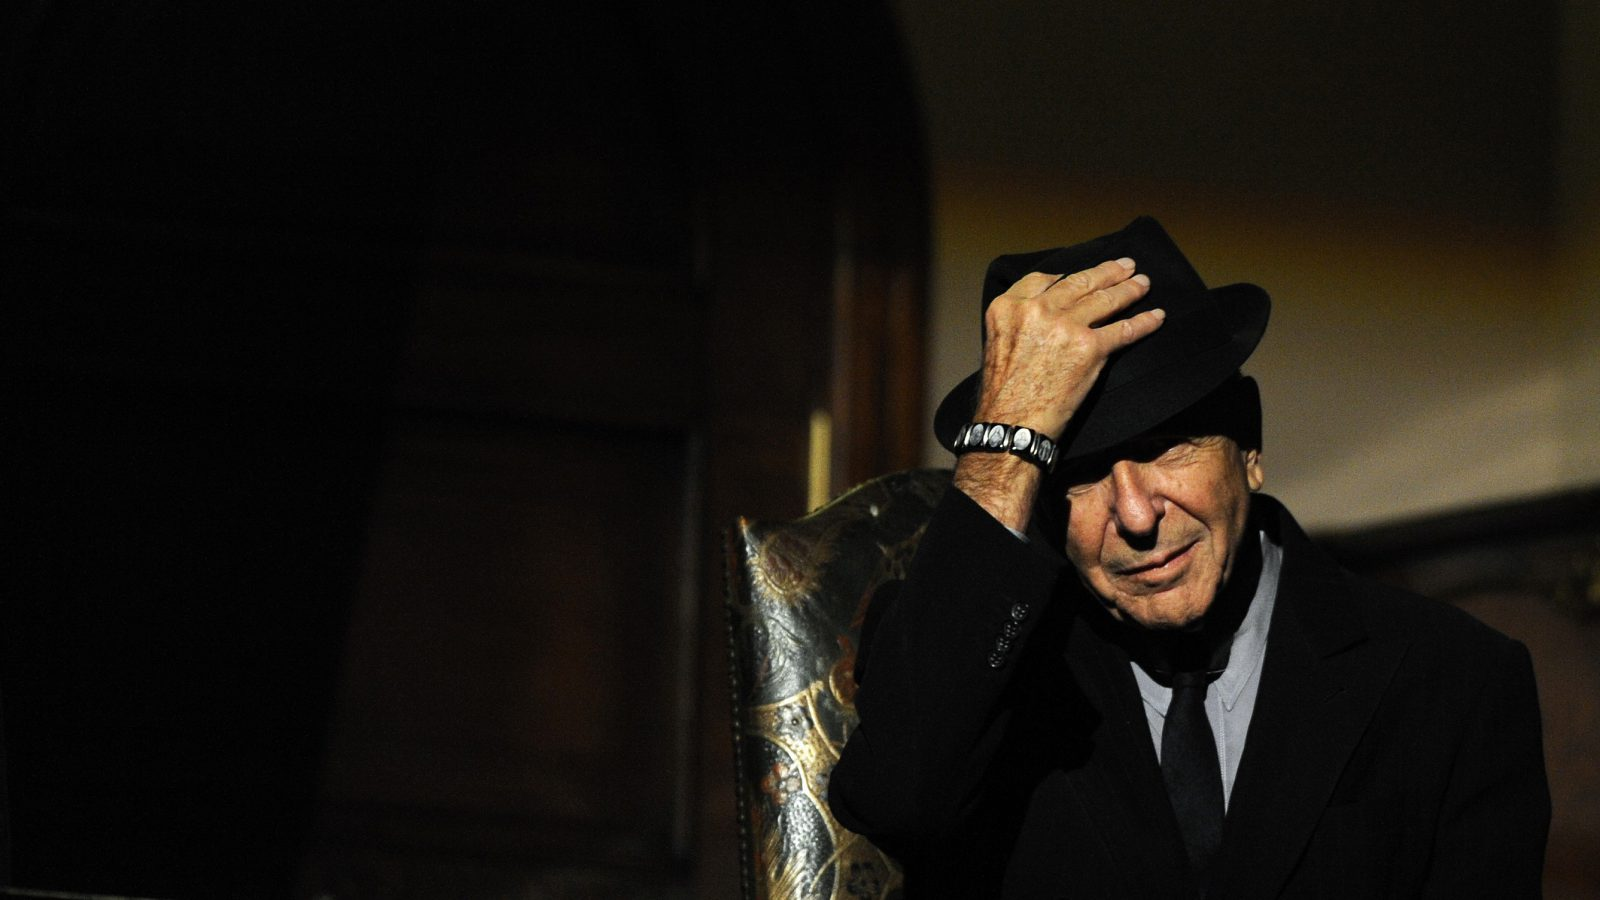 Canadian singer-songwriter Leonard Cohen is seen during a tribute in Gijon, northern Spain October 19, 2011. Cohen will be awarded with the 2011 Prince of Asturias Award for Literature in a traditional ceremony on Friday in the Asturian capital. The awards have been given out annually since 1981 to reward scientific, technical, cultural, social and humanitarian work done by individuals, work teams and institutions. REUTERS/Eloy Alonso (SPAIN - Tags: SOCIETY ENTERTAINMENT) - RTR2SV7T